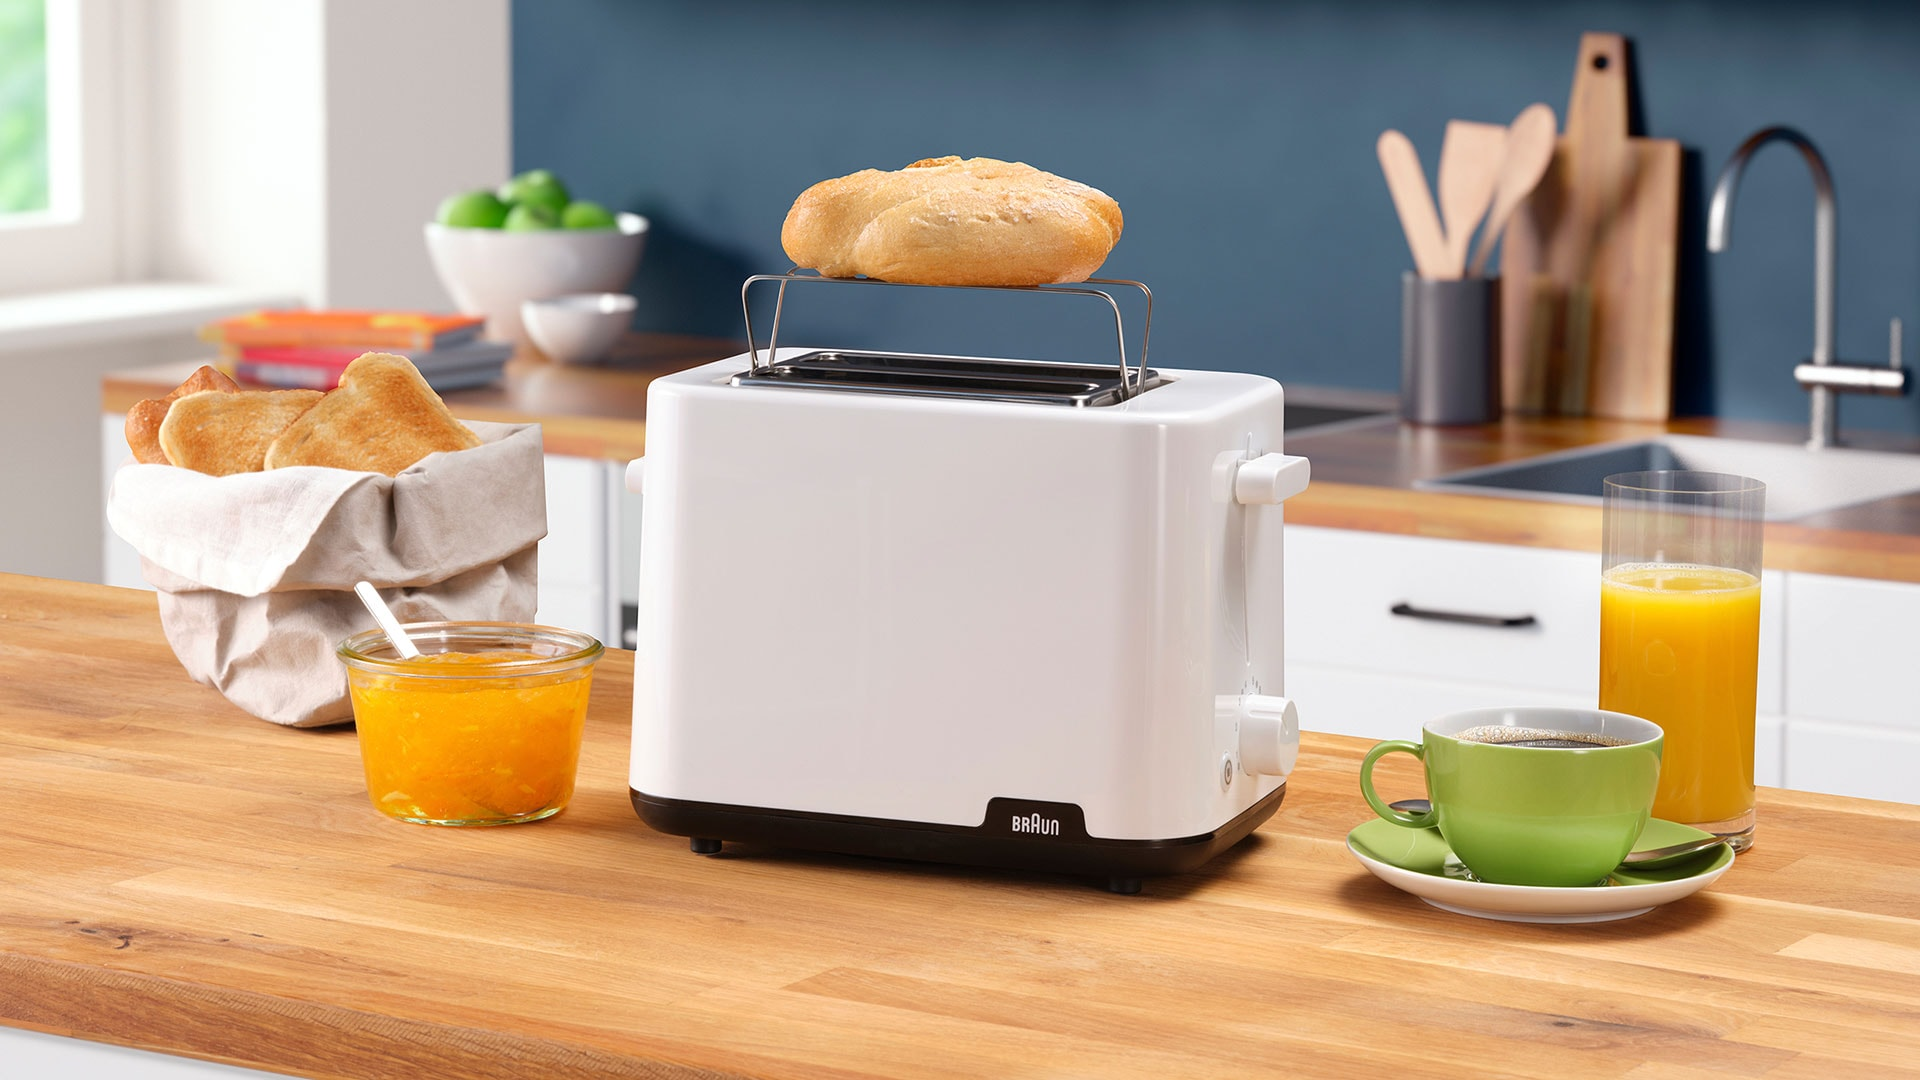 Braun Breakfast Series 1 Toaster HT 1010 WH lifestyle